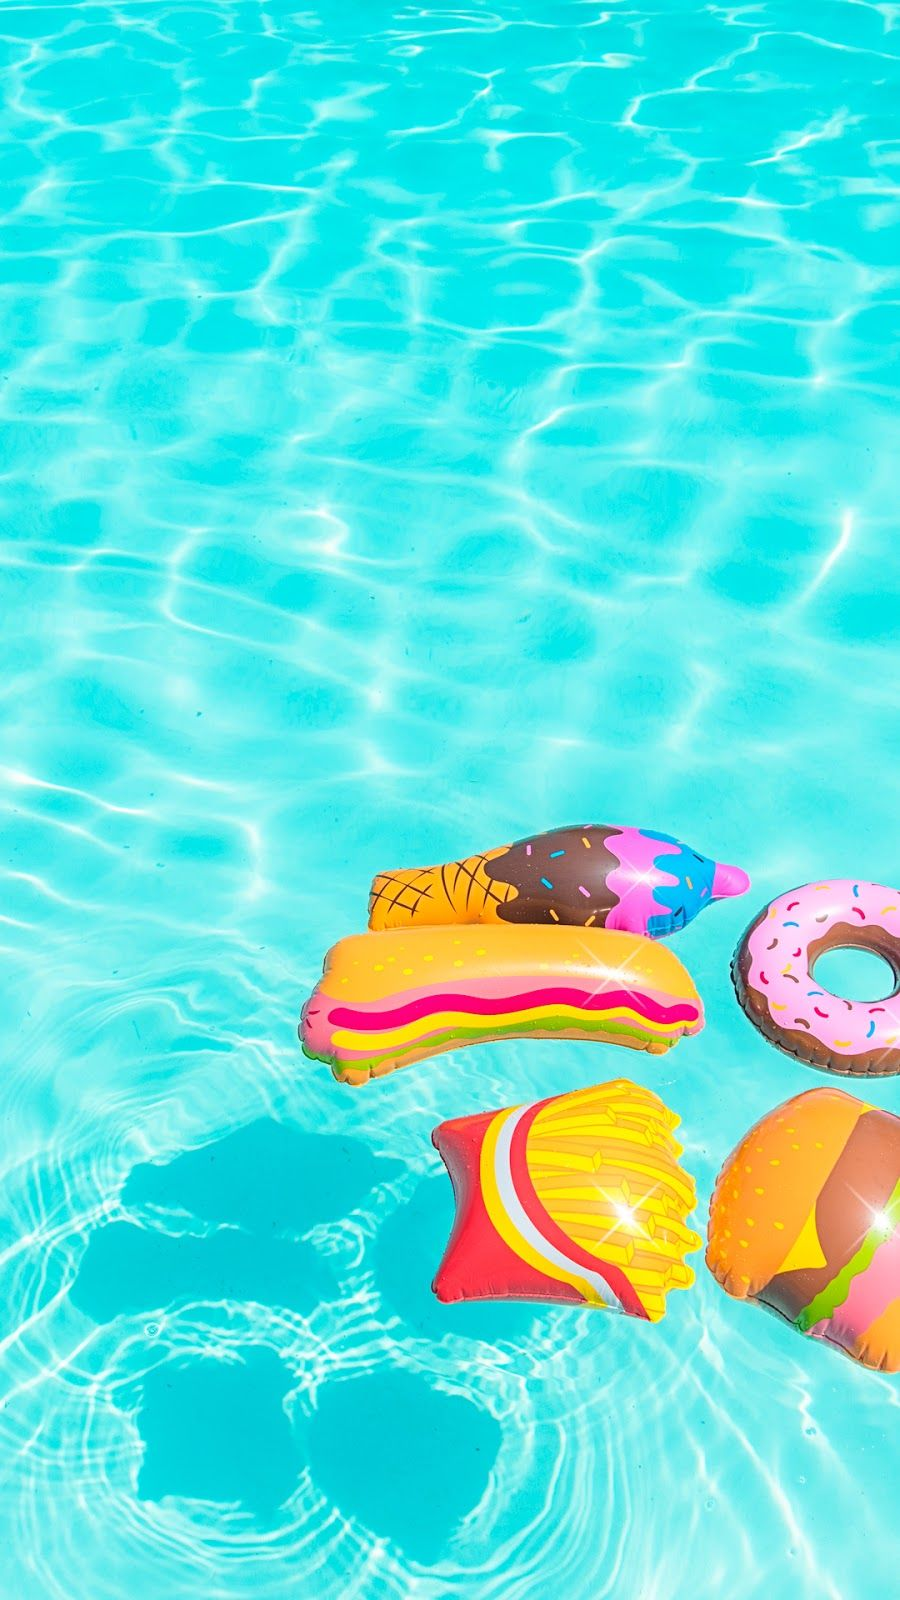 Swimming pool mobile wallpaper Wallpaper iphone summer